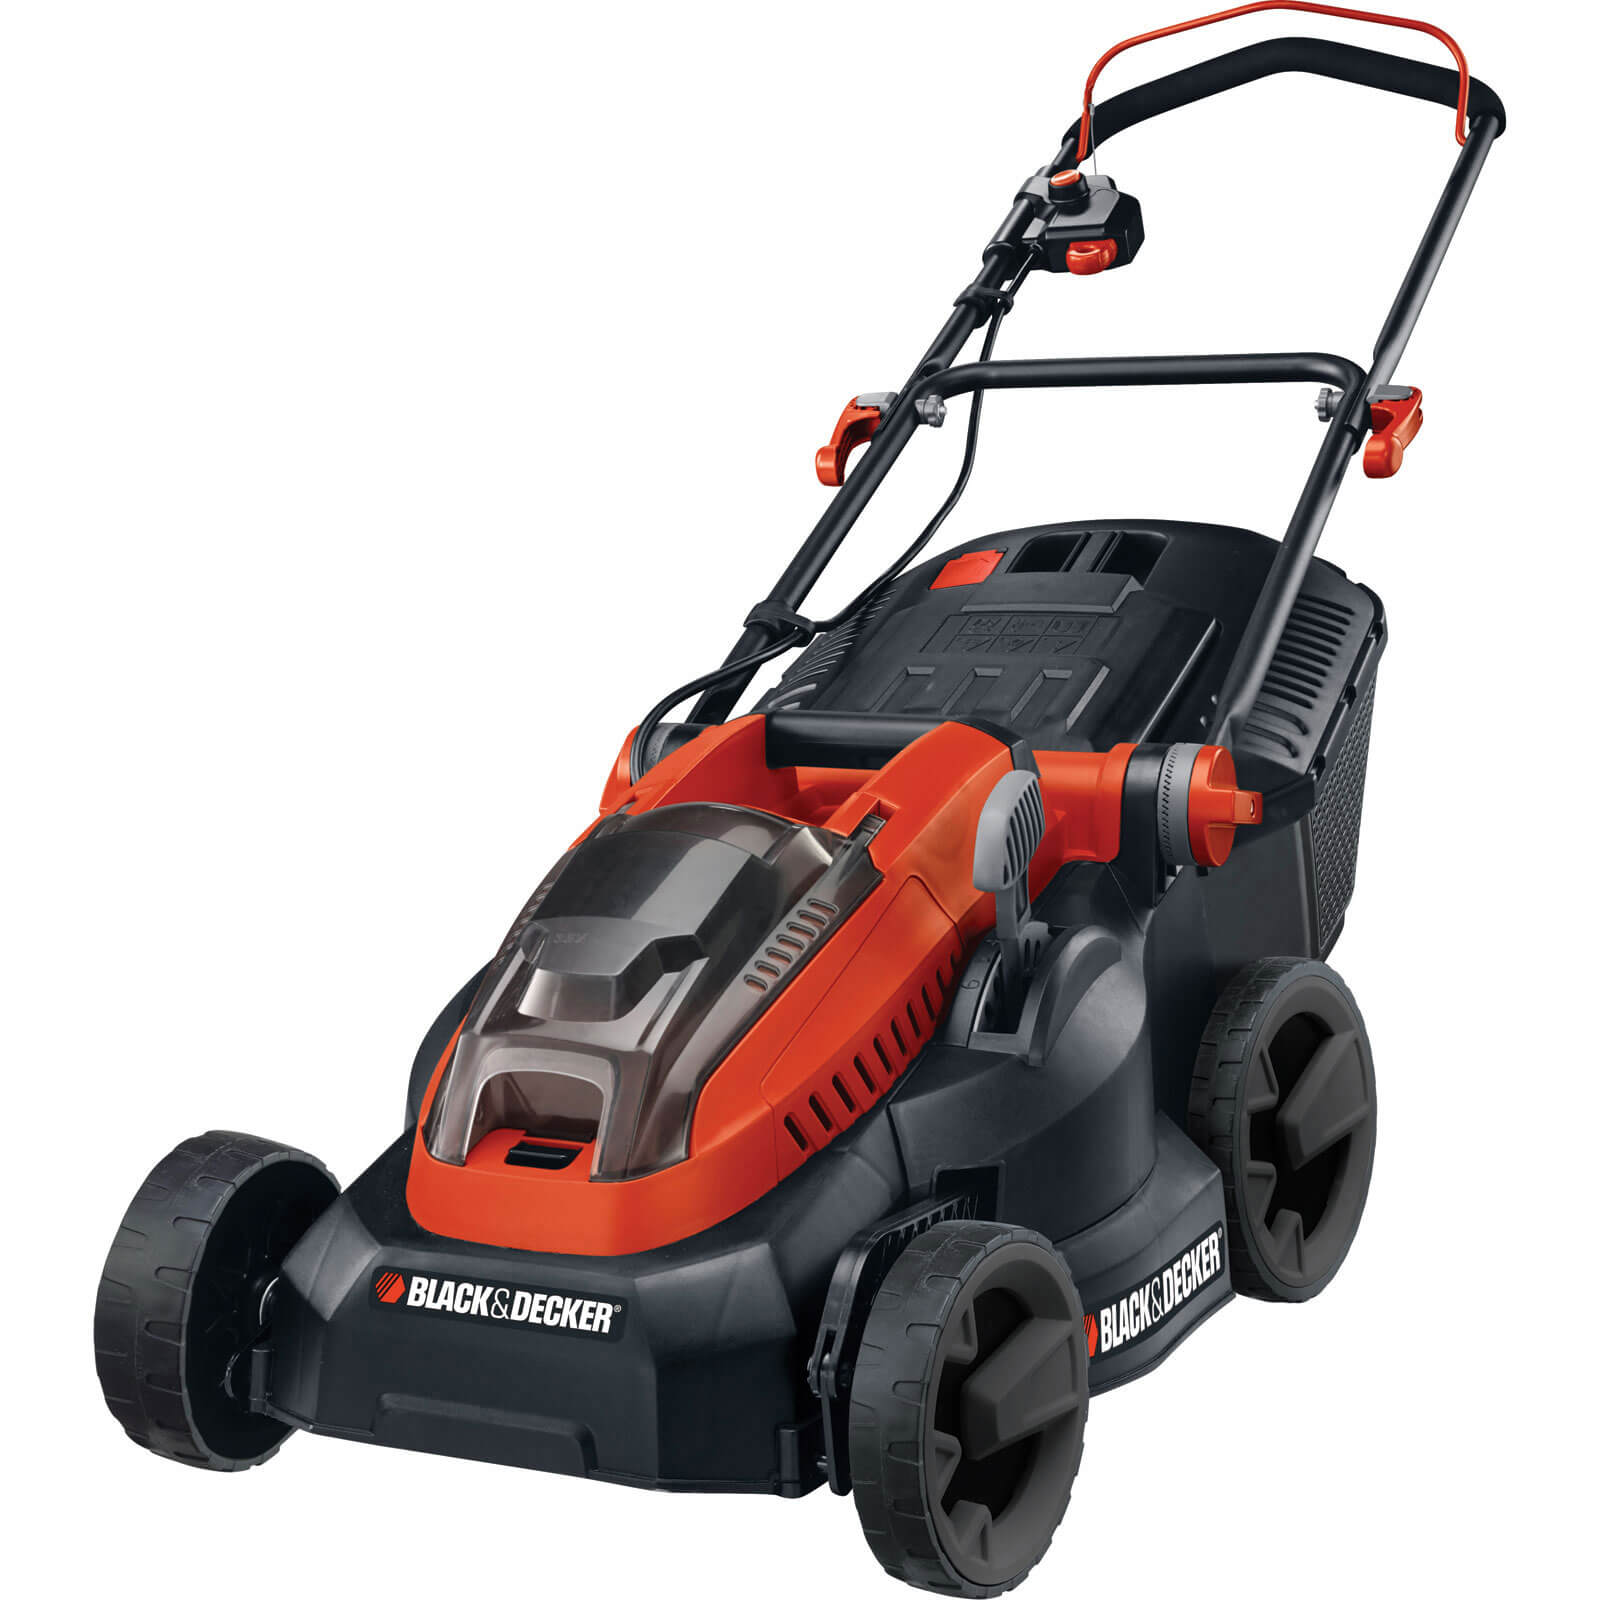 Image of Black & Decker CLM3820L 36v Cordless Rotary Lawnmower 380mm 2 x 2ah Li-ion Charger